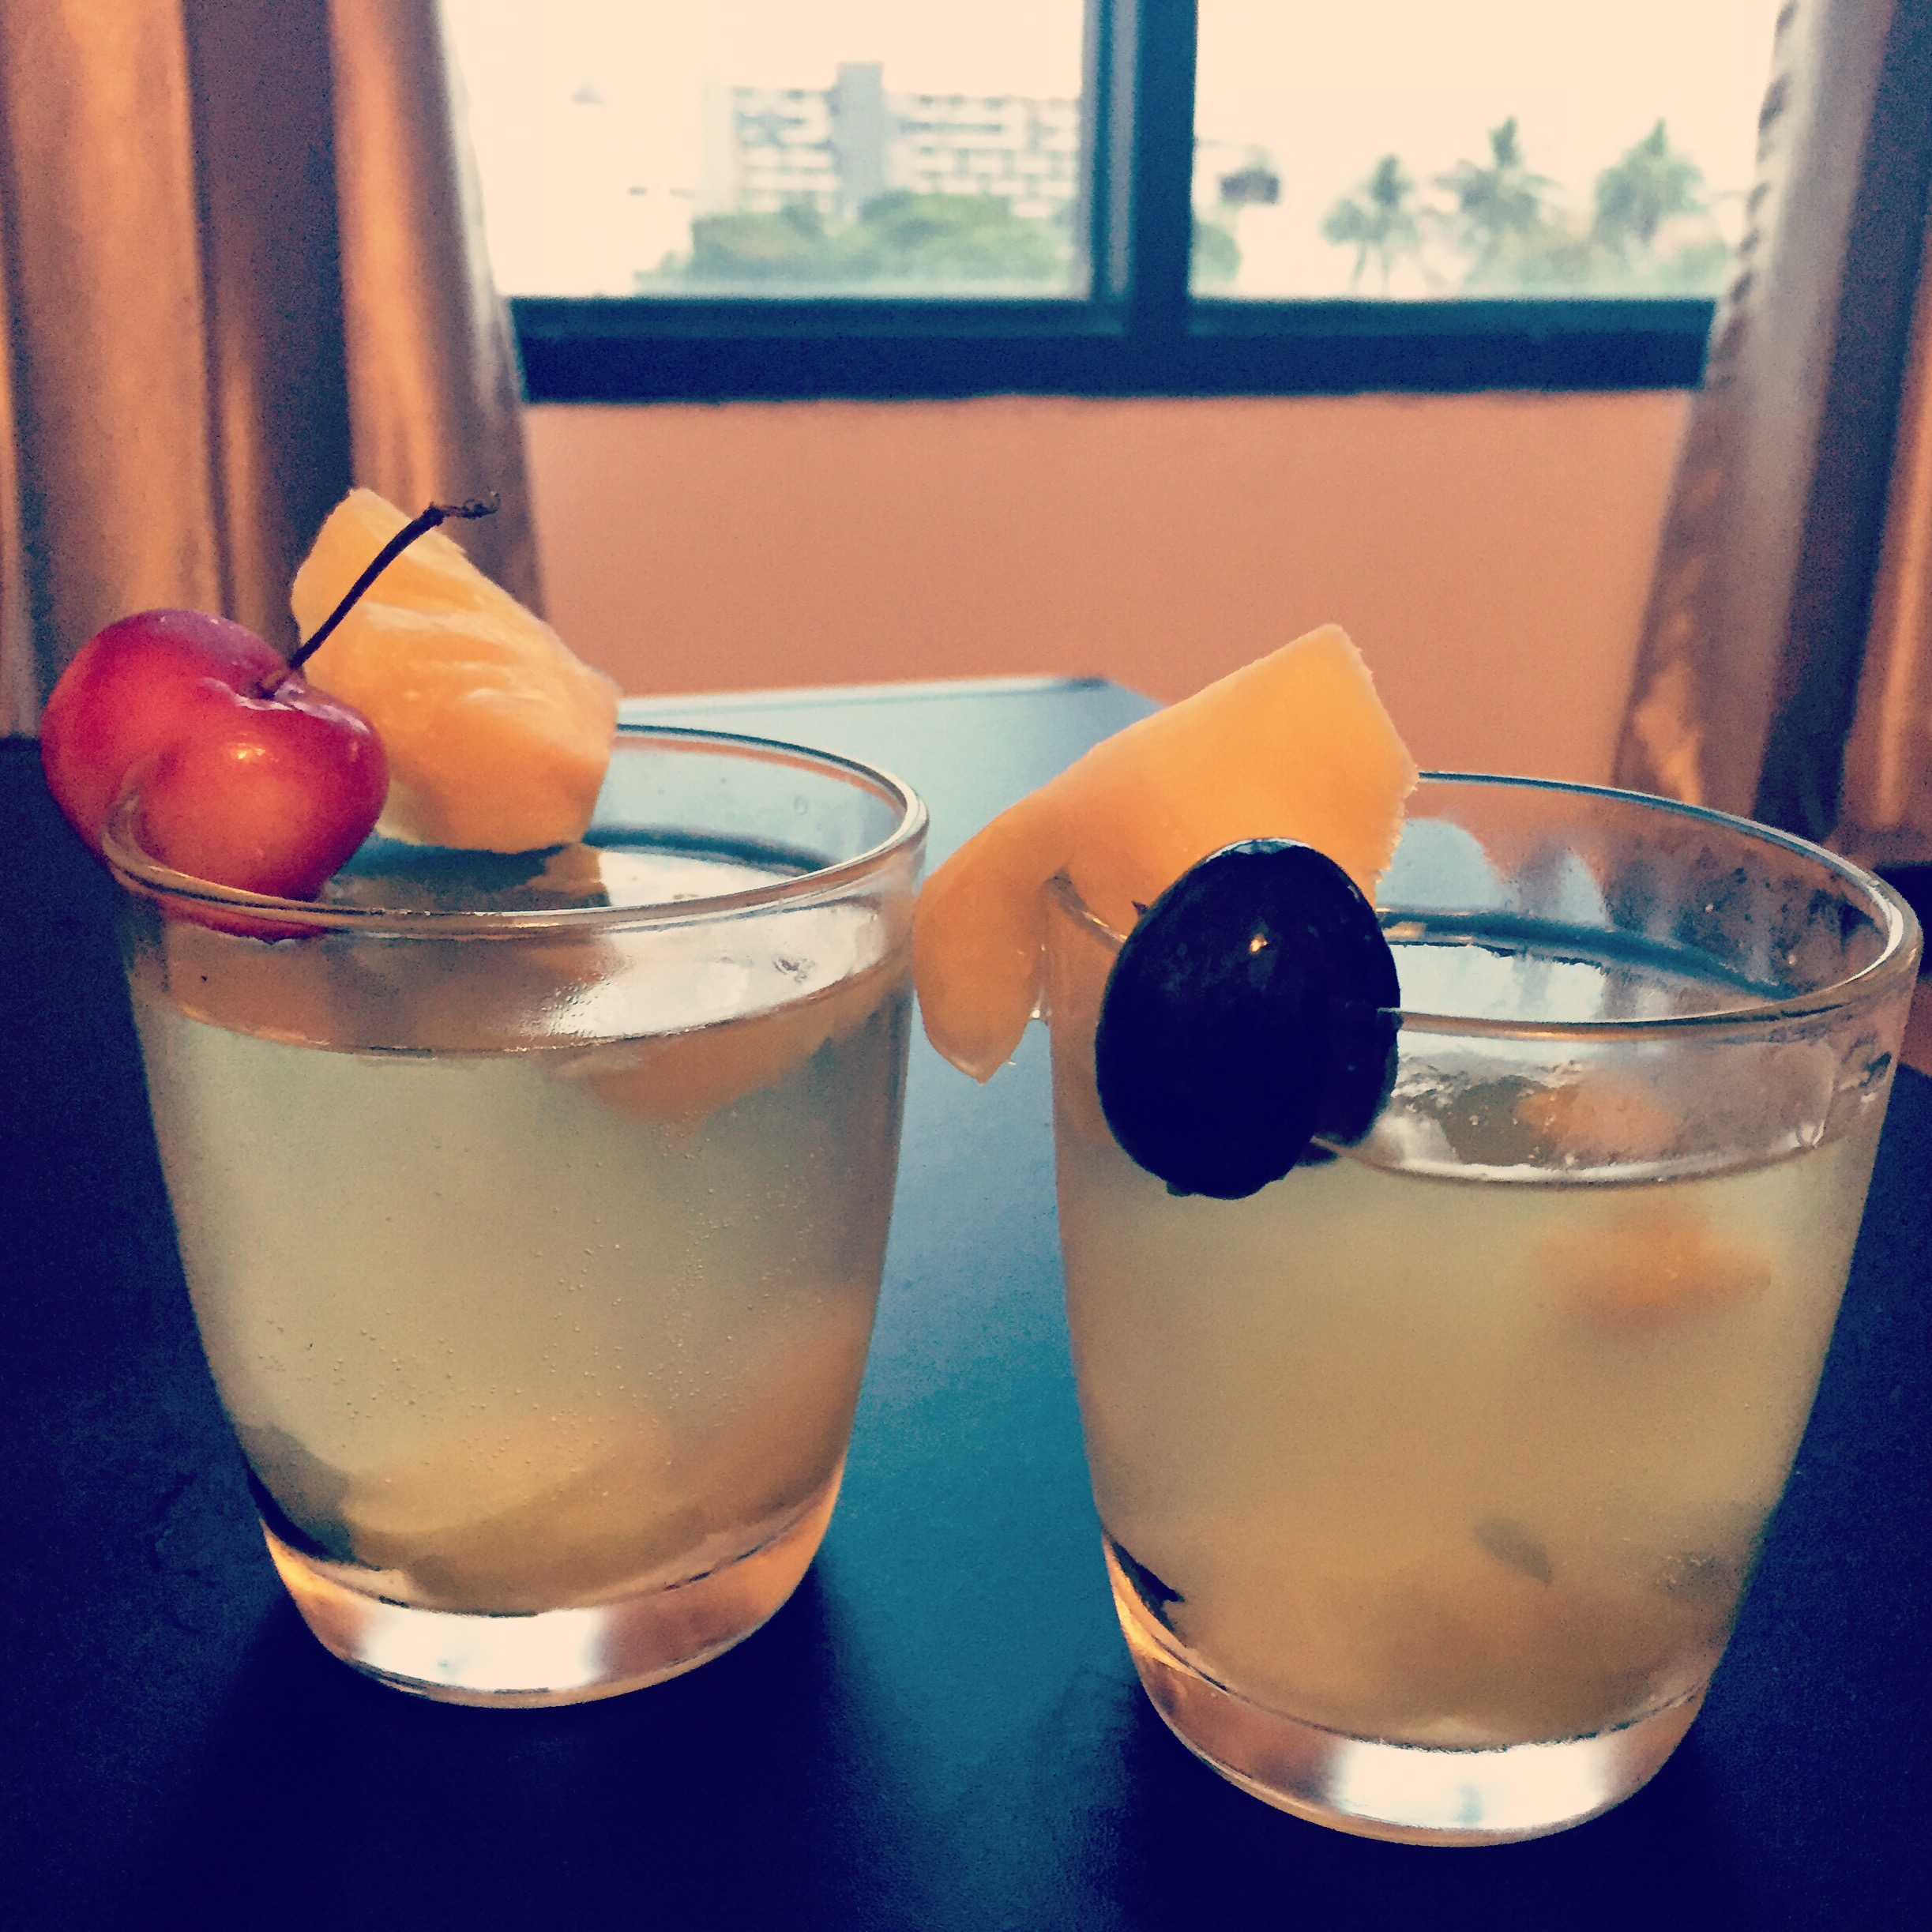 Extra Thai fruit? Make white wine sangria